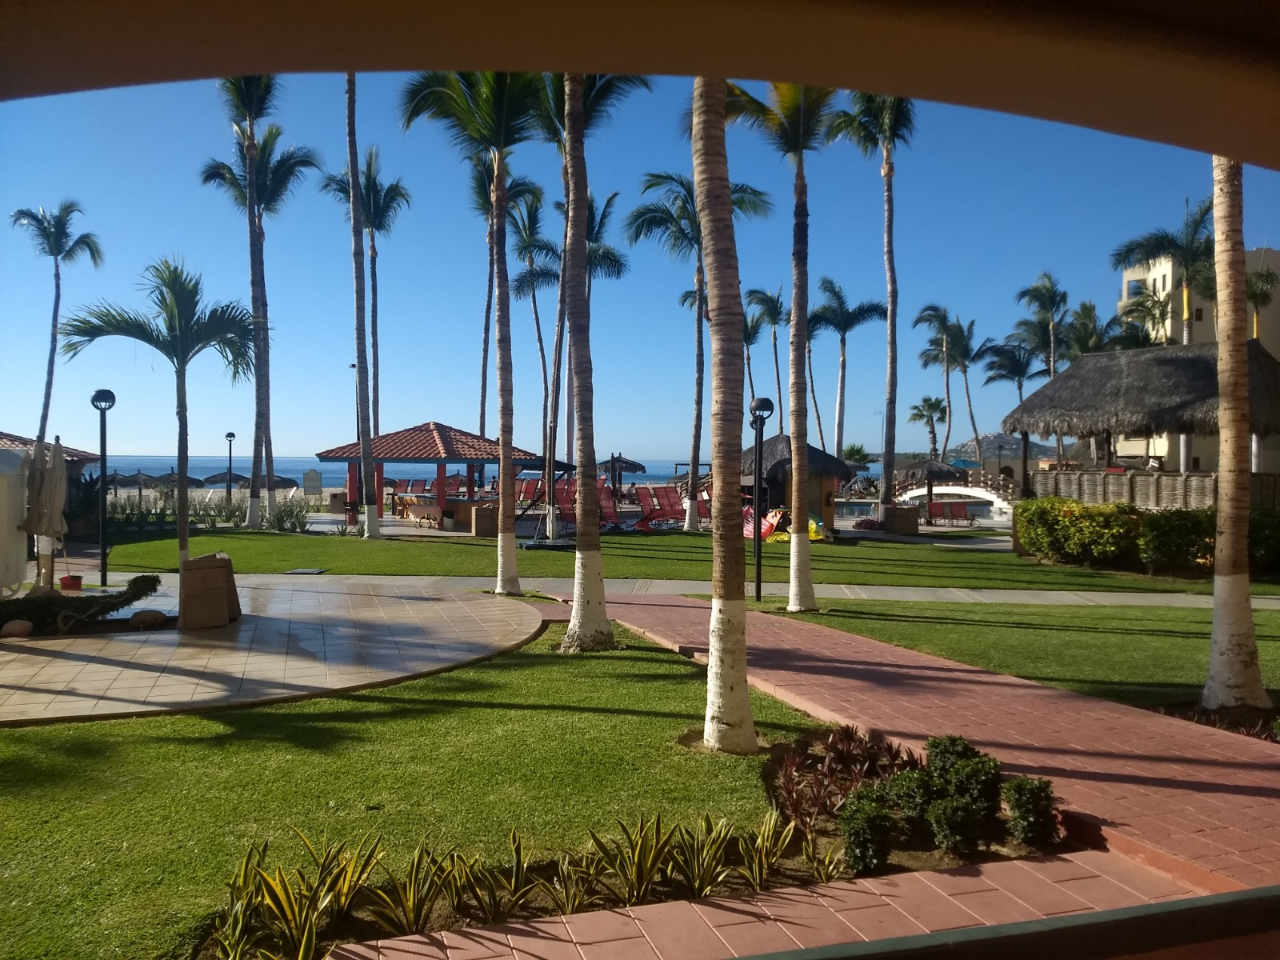 Coral Baja patio in March 2019